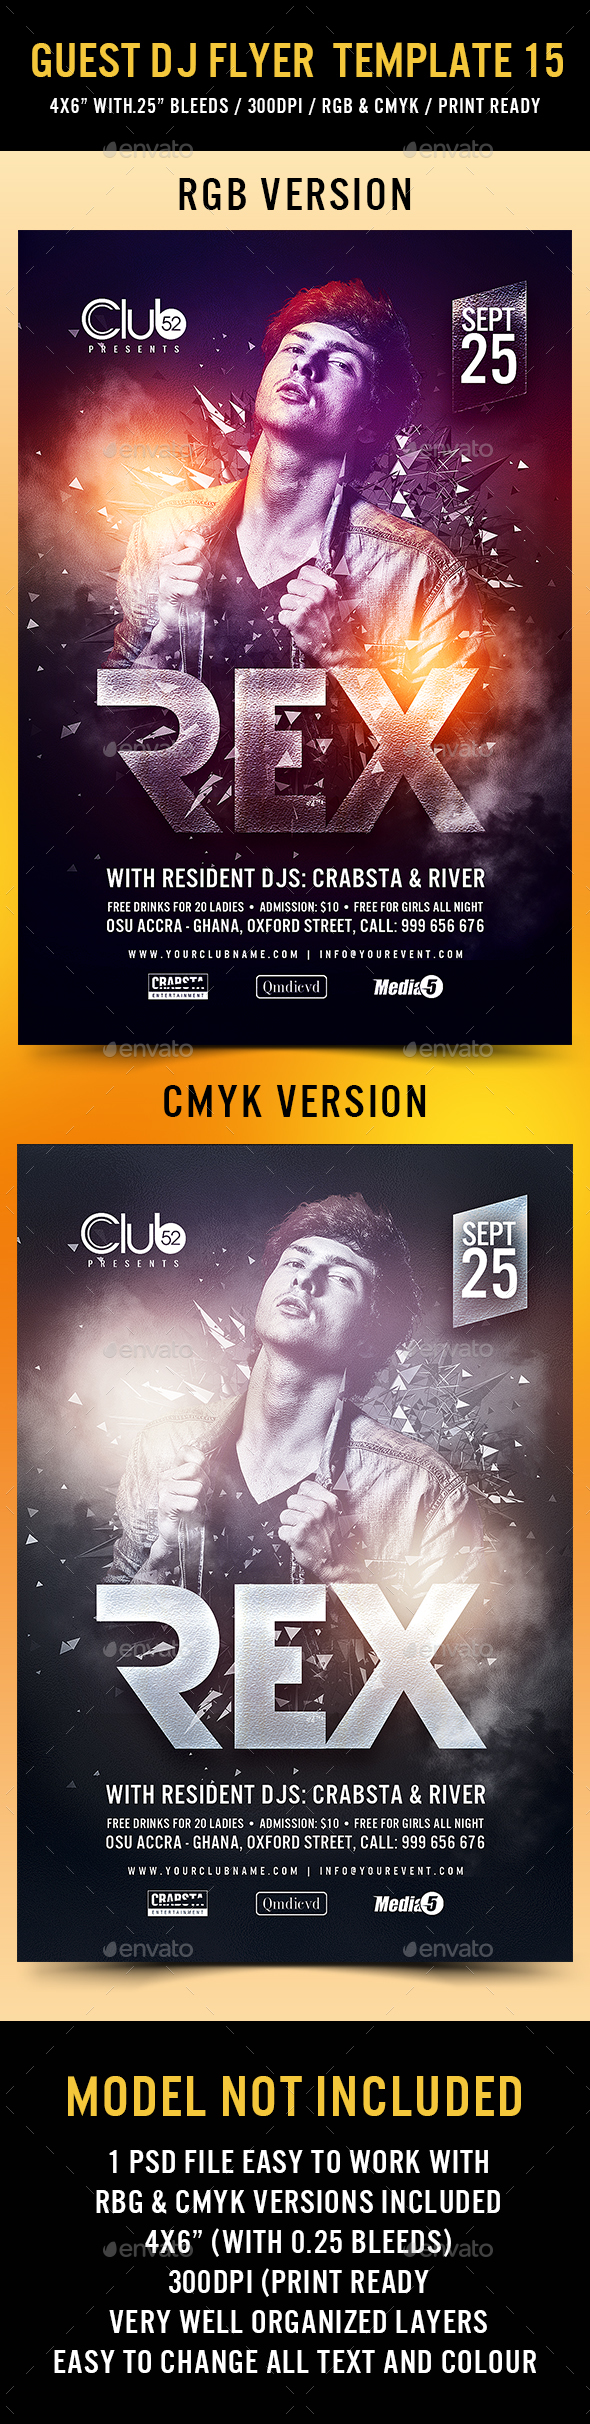 Guest DJ Flyer Template 15 - Clubs & Parties Events